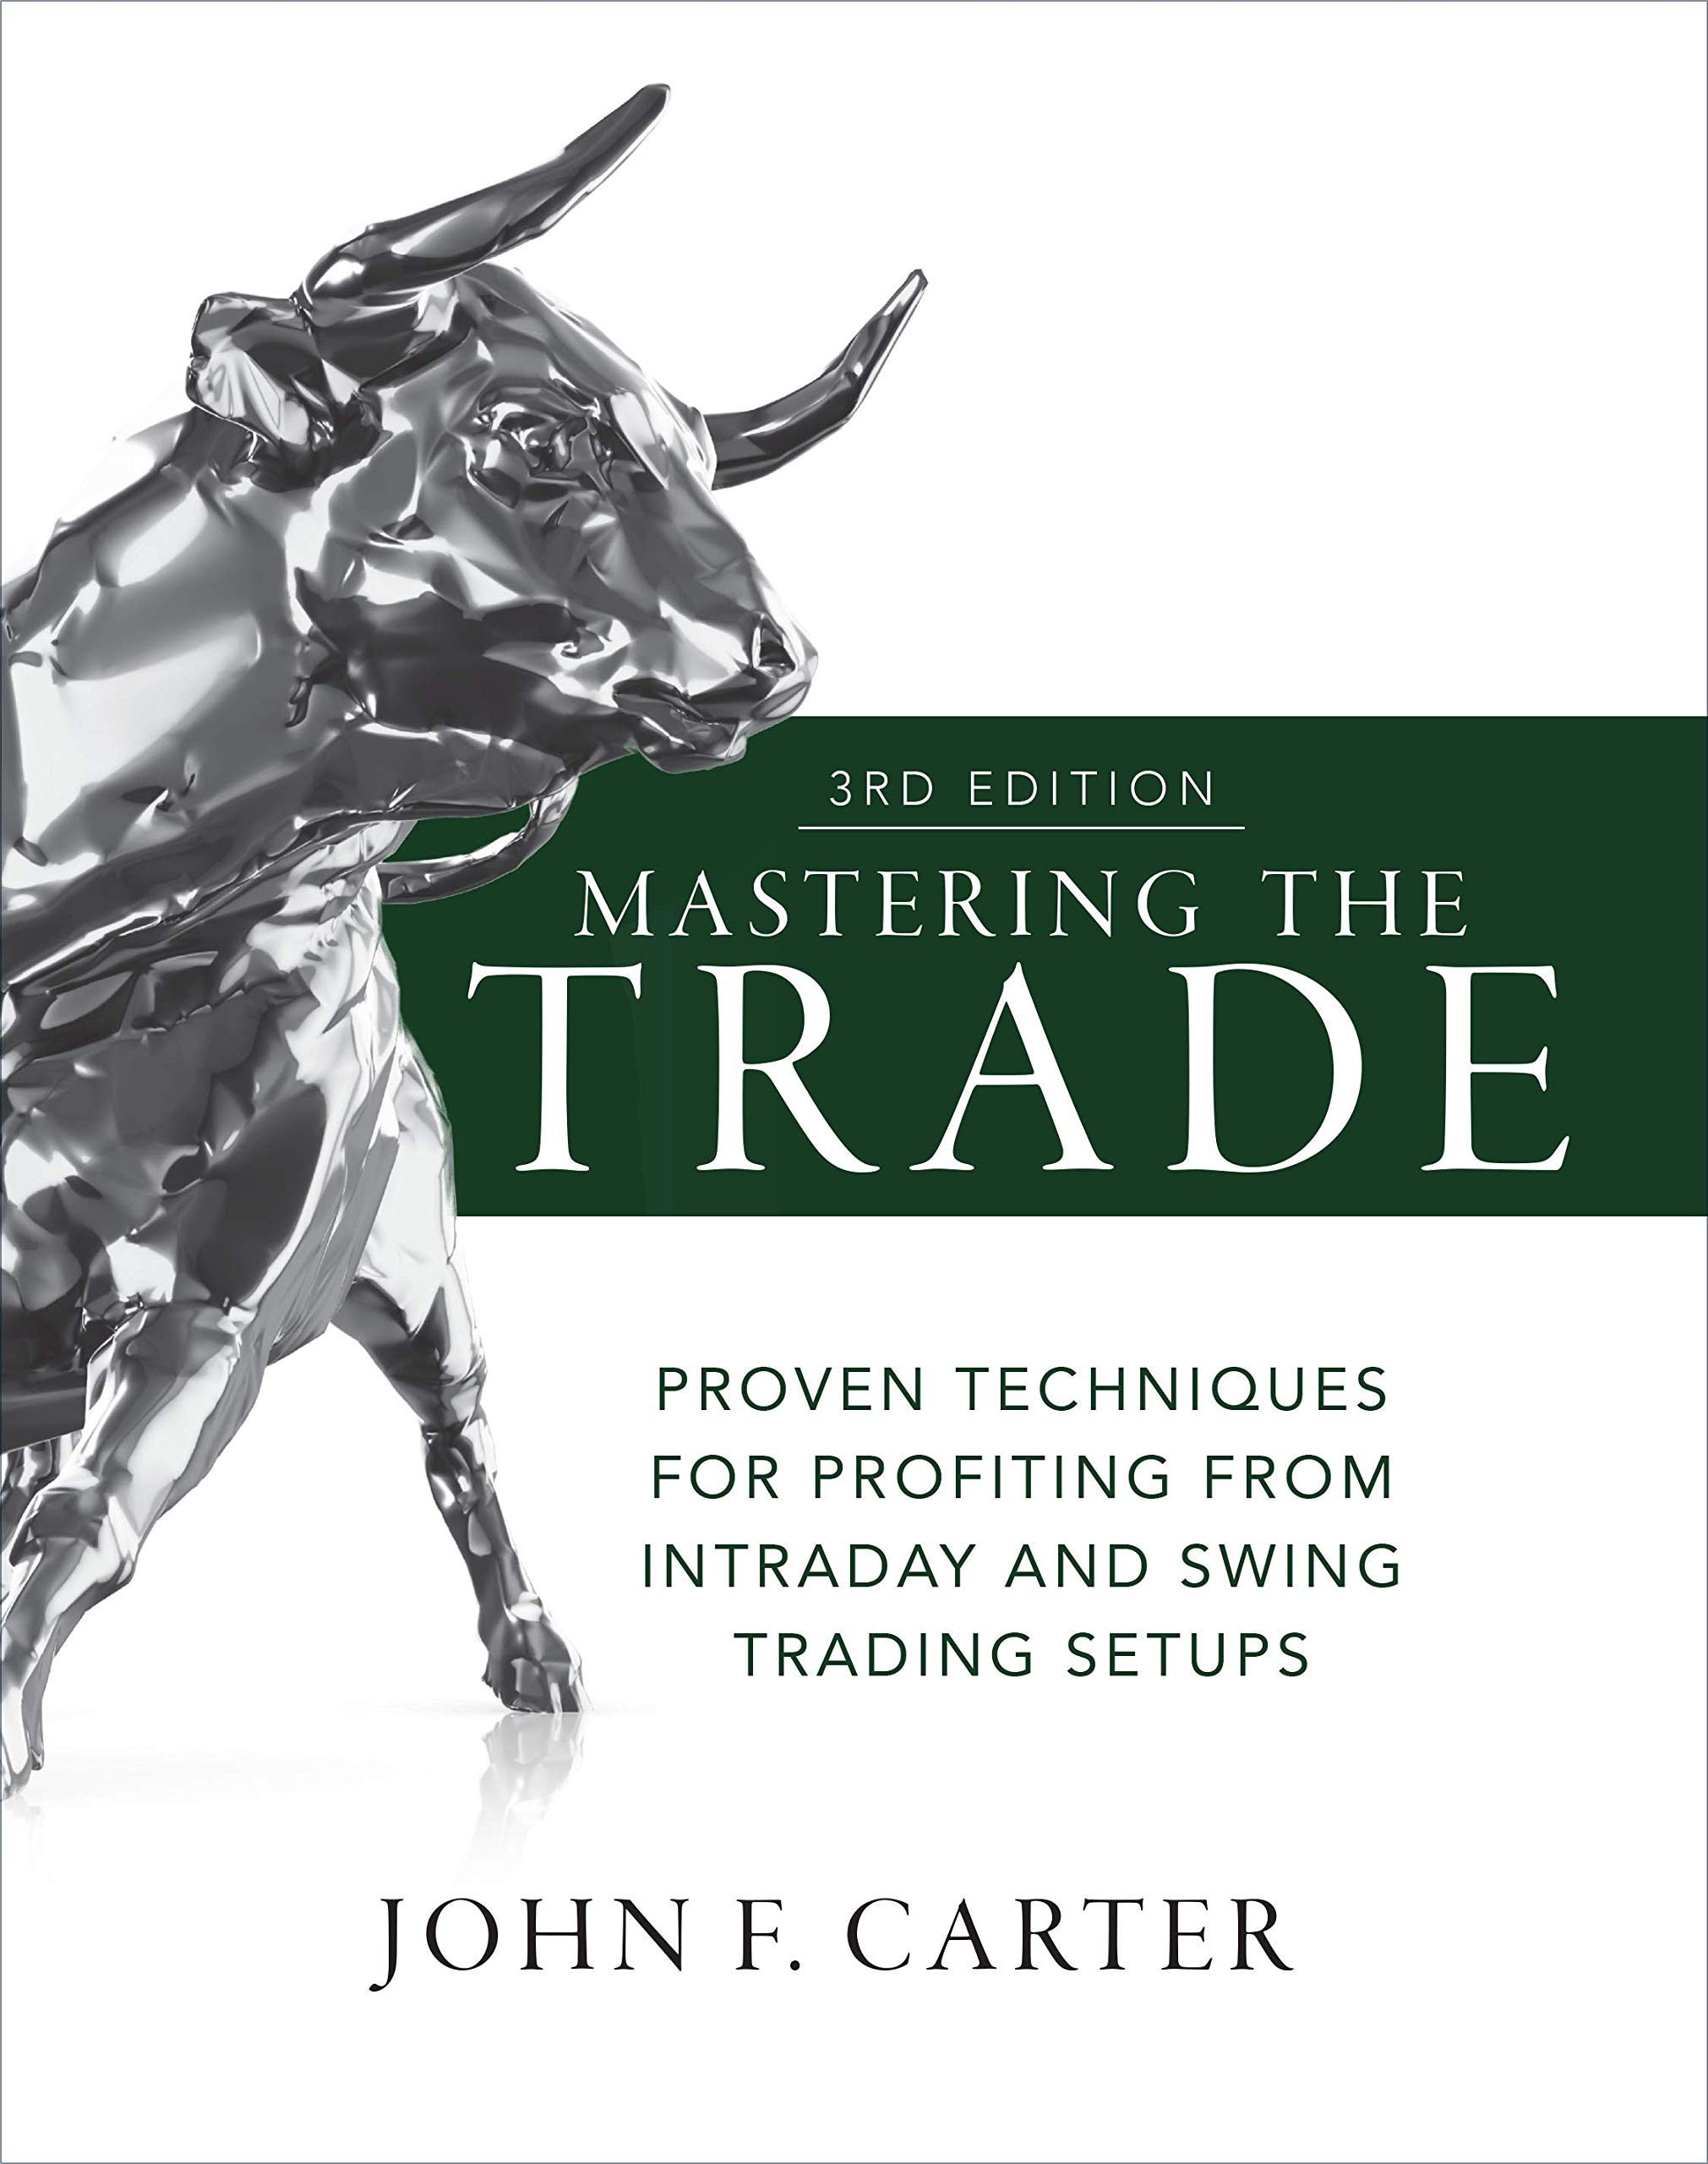 Mastering the Trade, Third Edition: Proven Techniques for Profiting from Intraday and Swing Trading Setups by McGraw-Hill Education